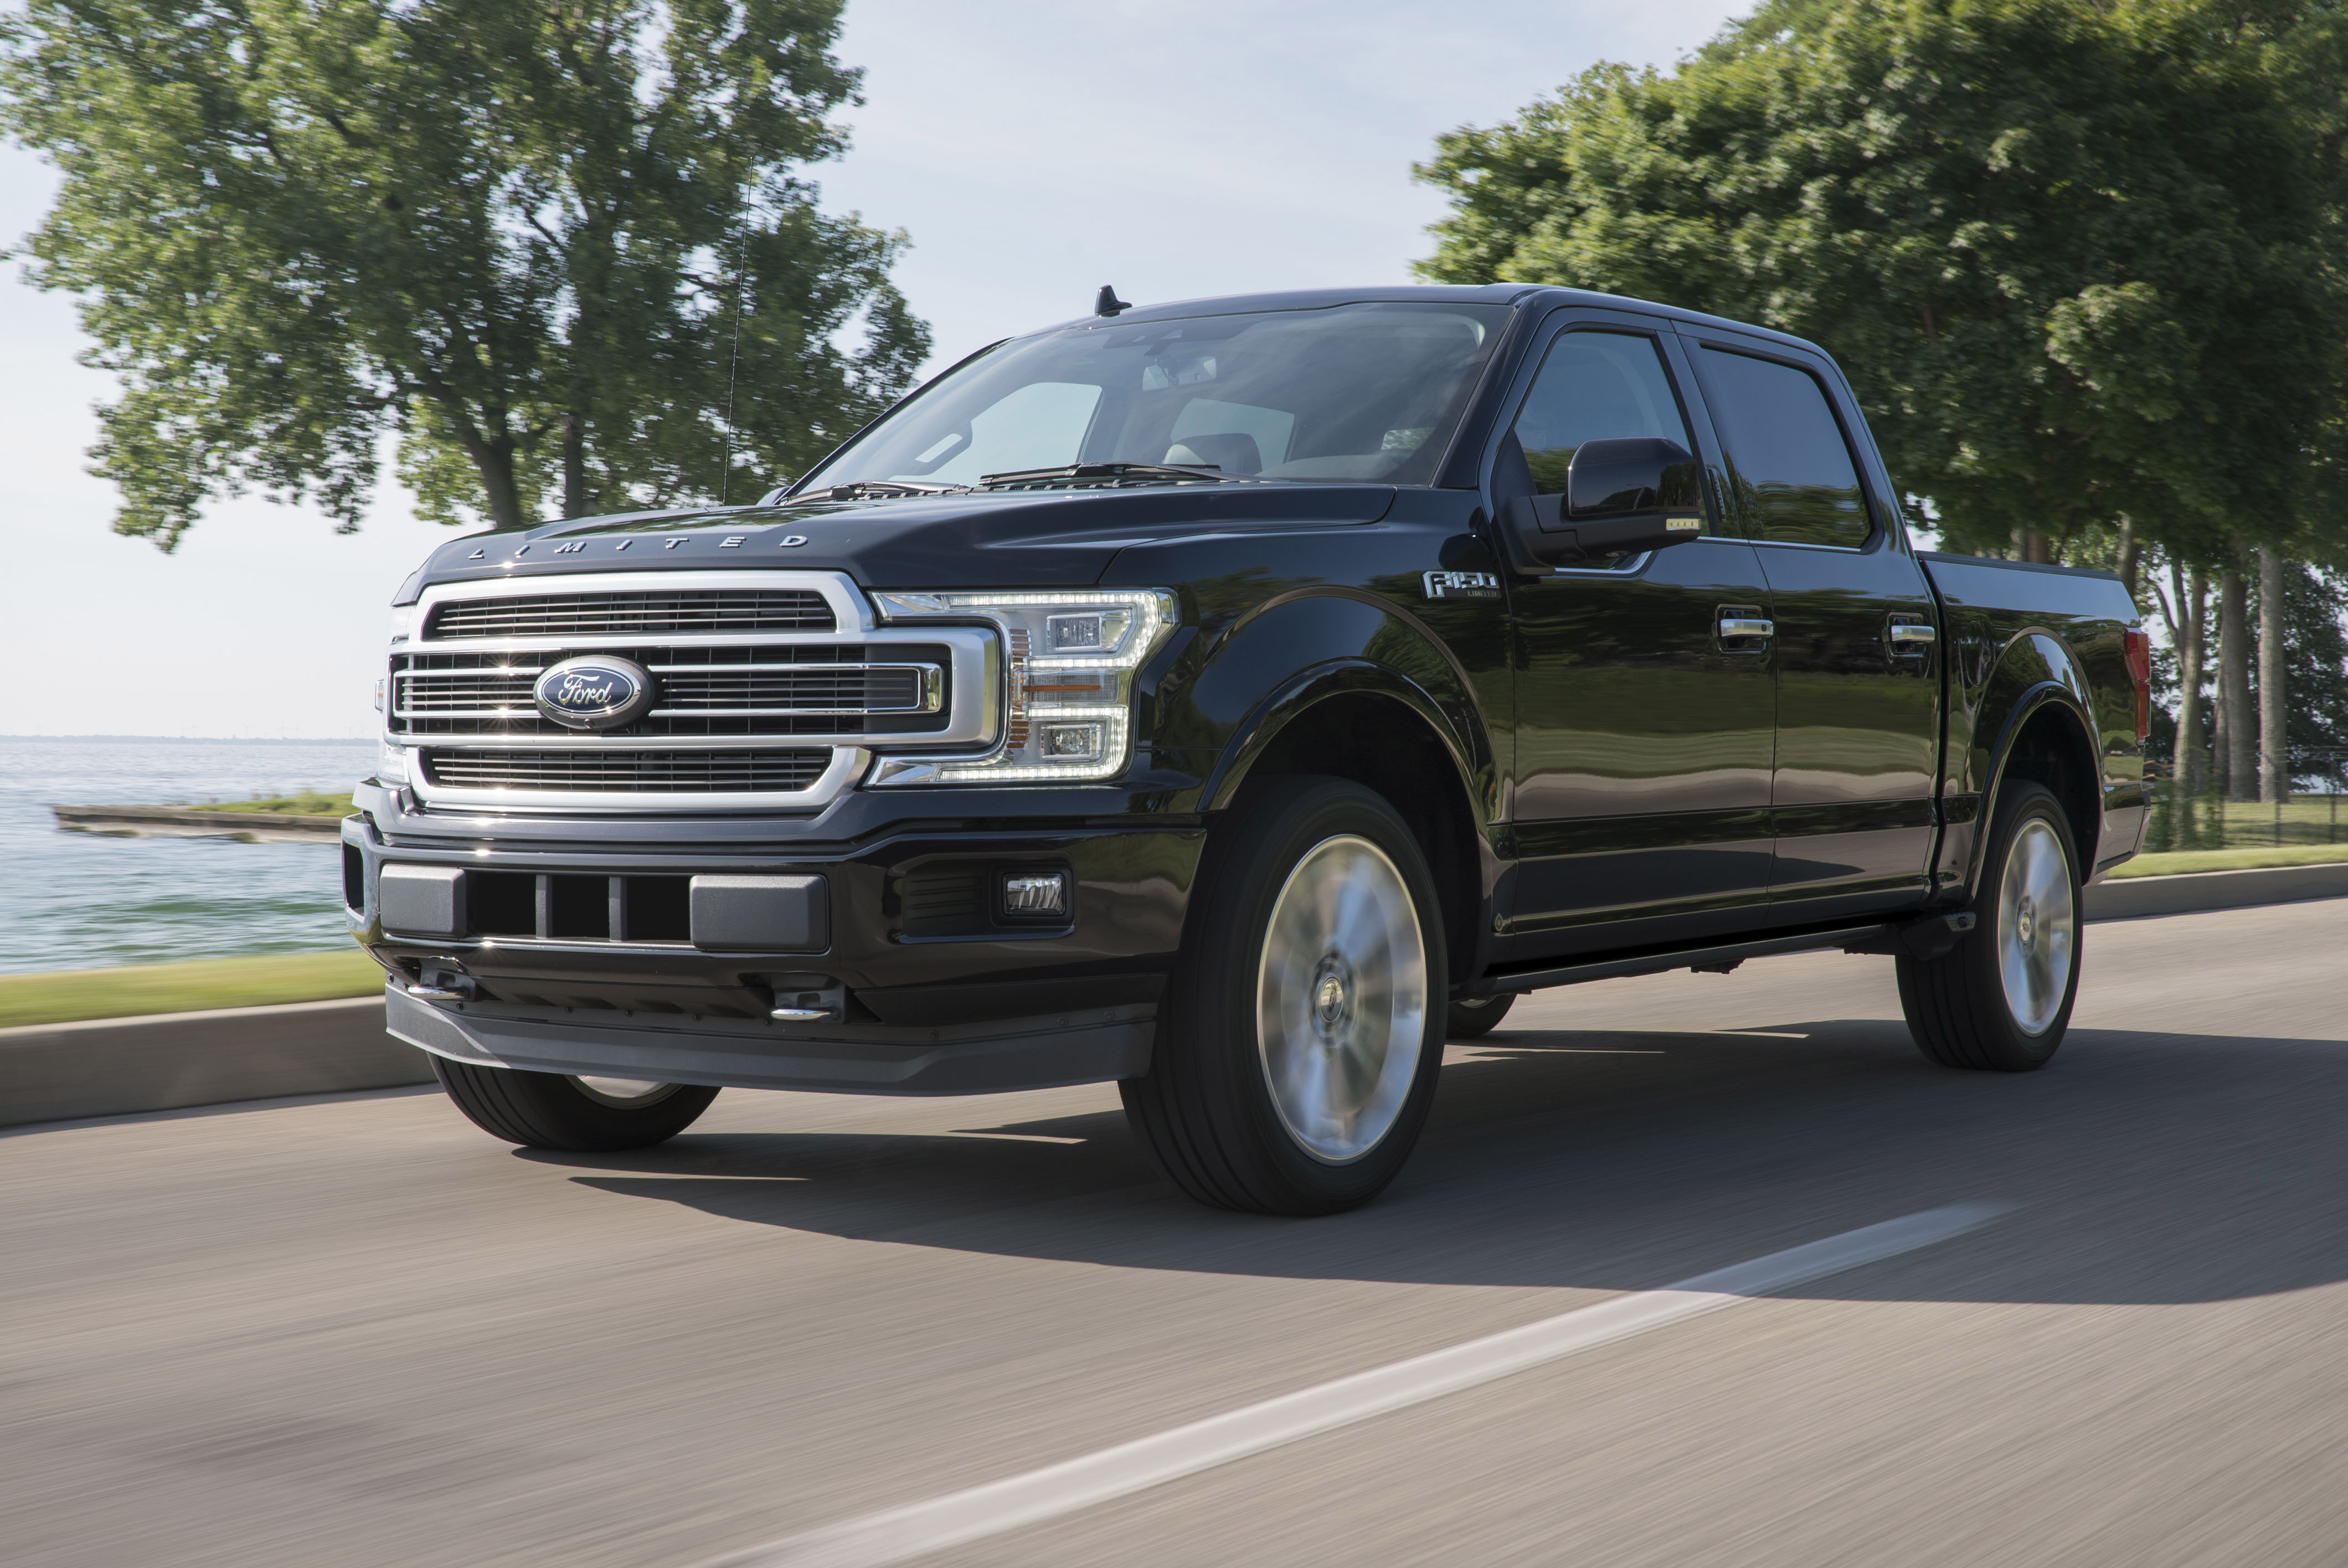 Ford to offer all-electric F-Series trucks including F-150 | Medium